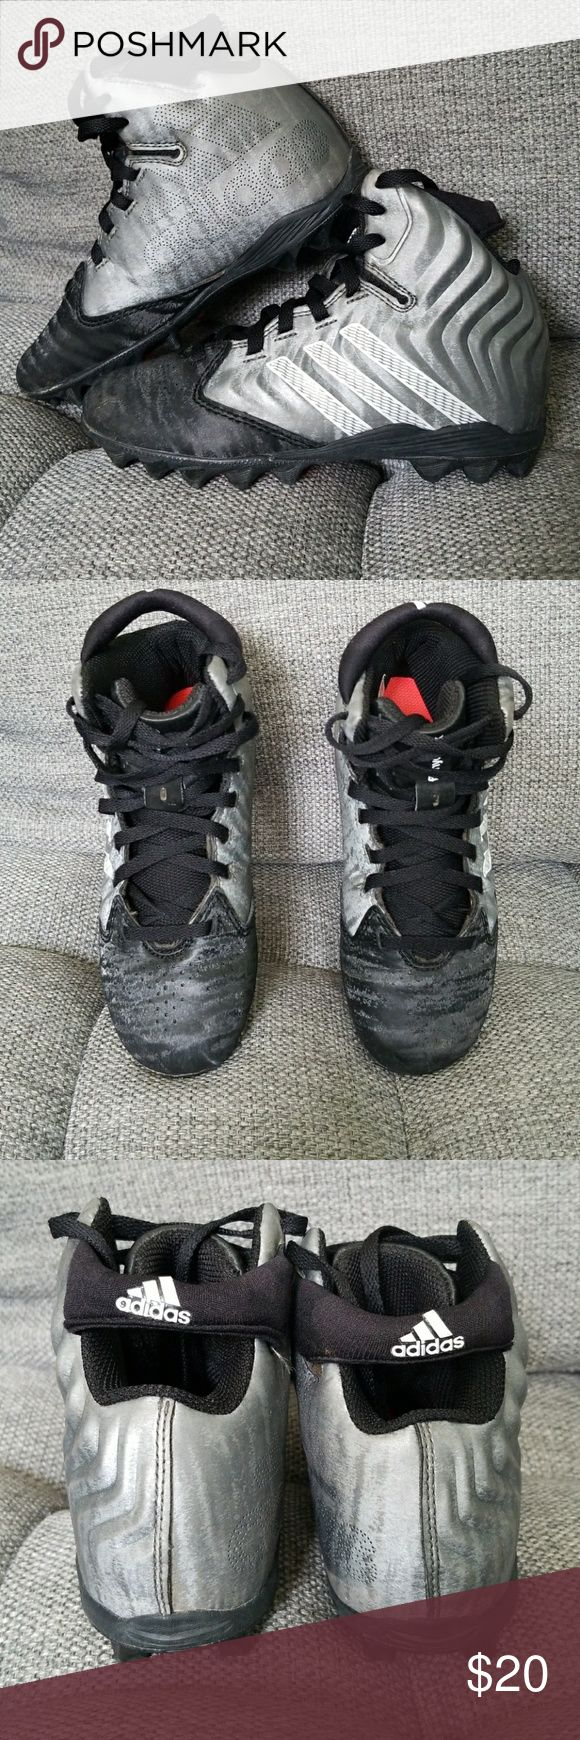 Adidas Youth Football Cleats Size 13 Black and silver Adidas Youth Filthyquick Mid football cleats. Size 13. Great condition with minimal wear. adidas Shoes